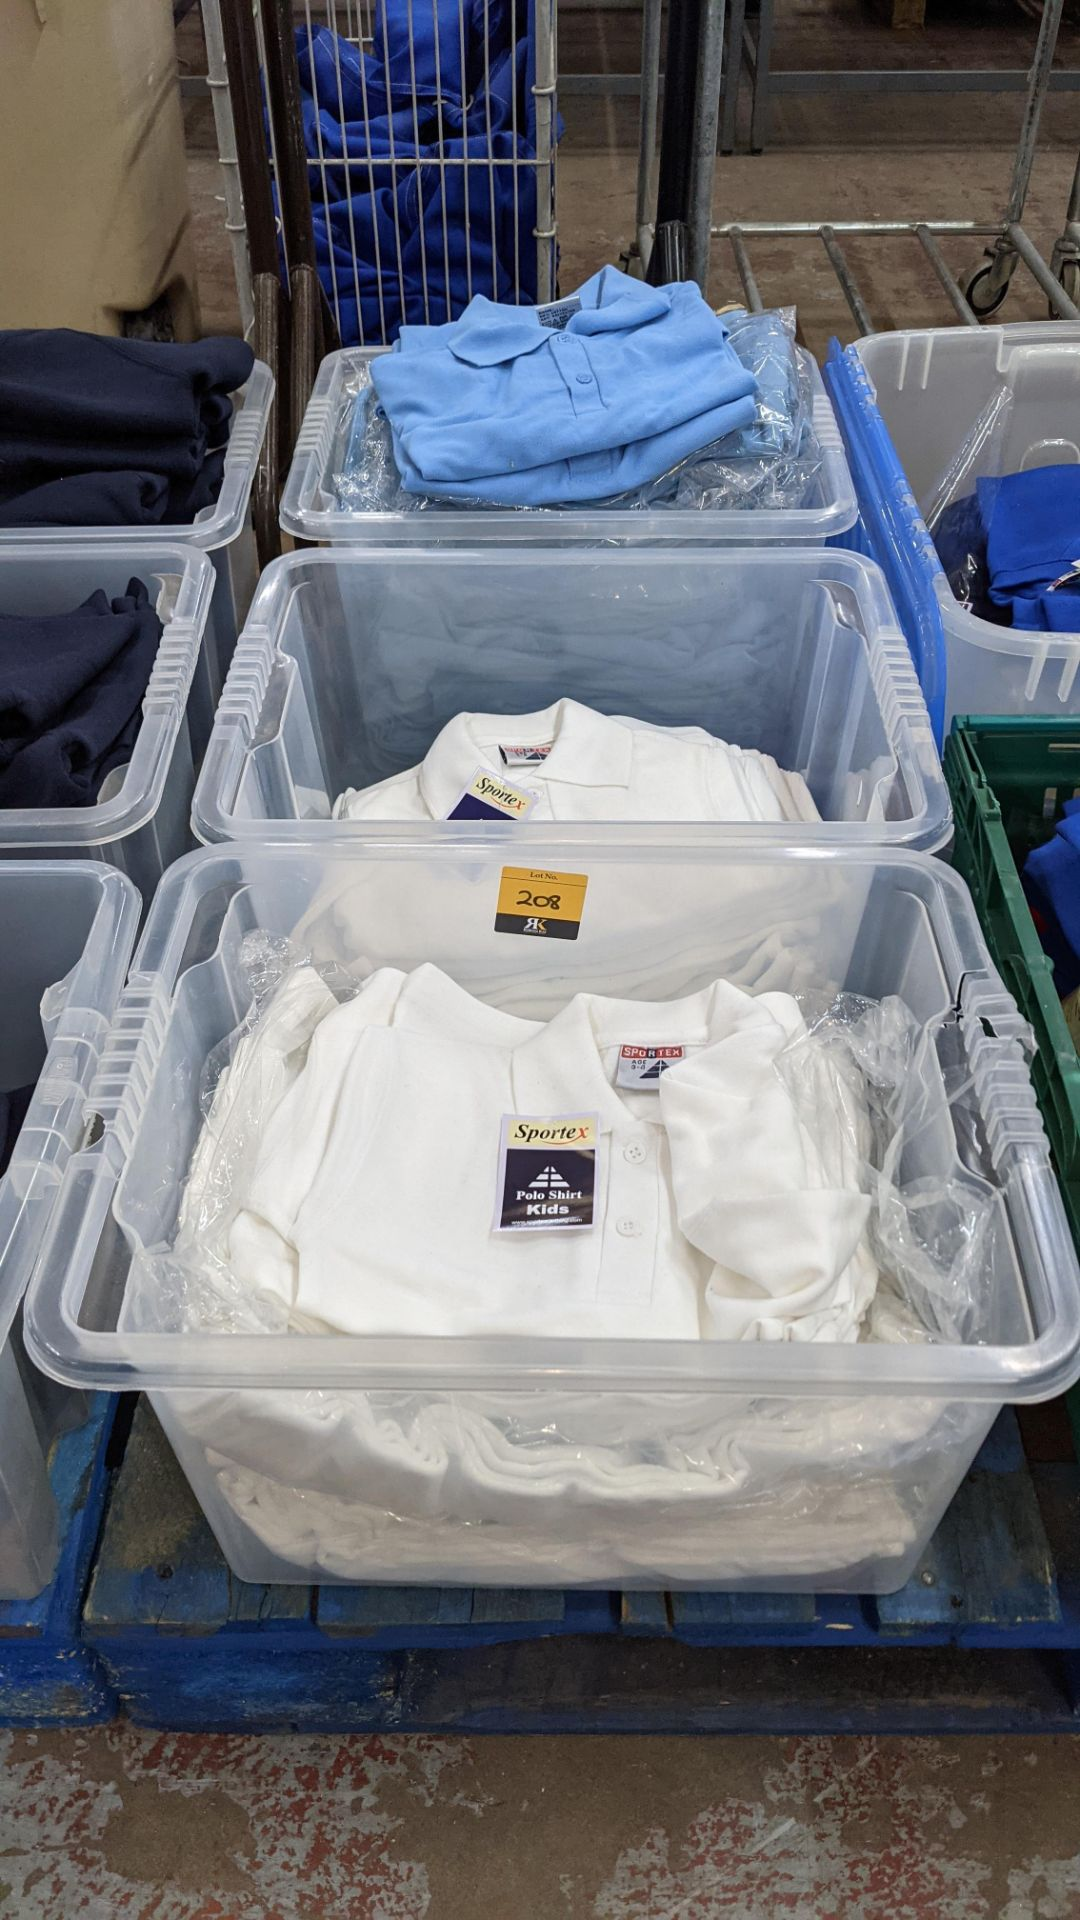 Approx 60 off Sportex children's polo shirts in white & blue - the contents of 3 crates. NB crates